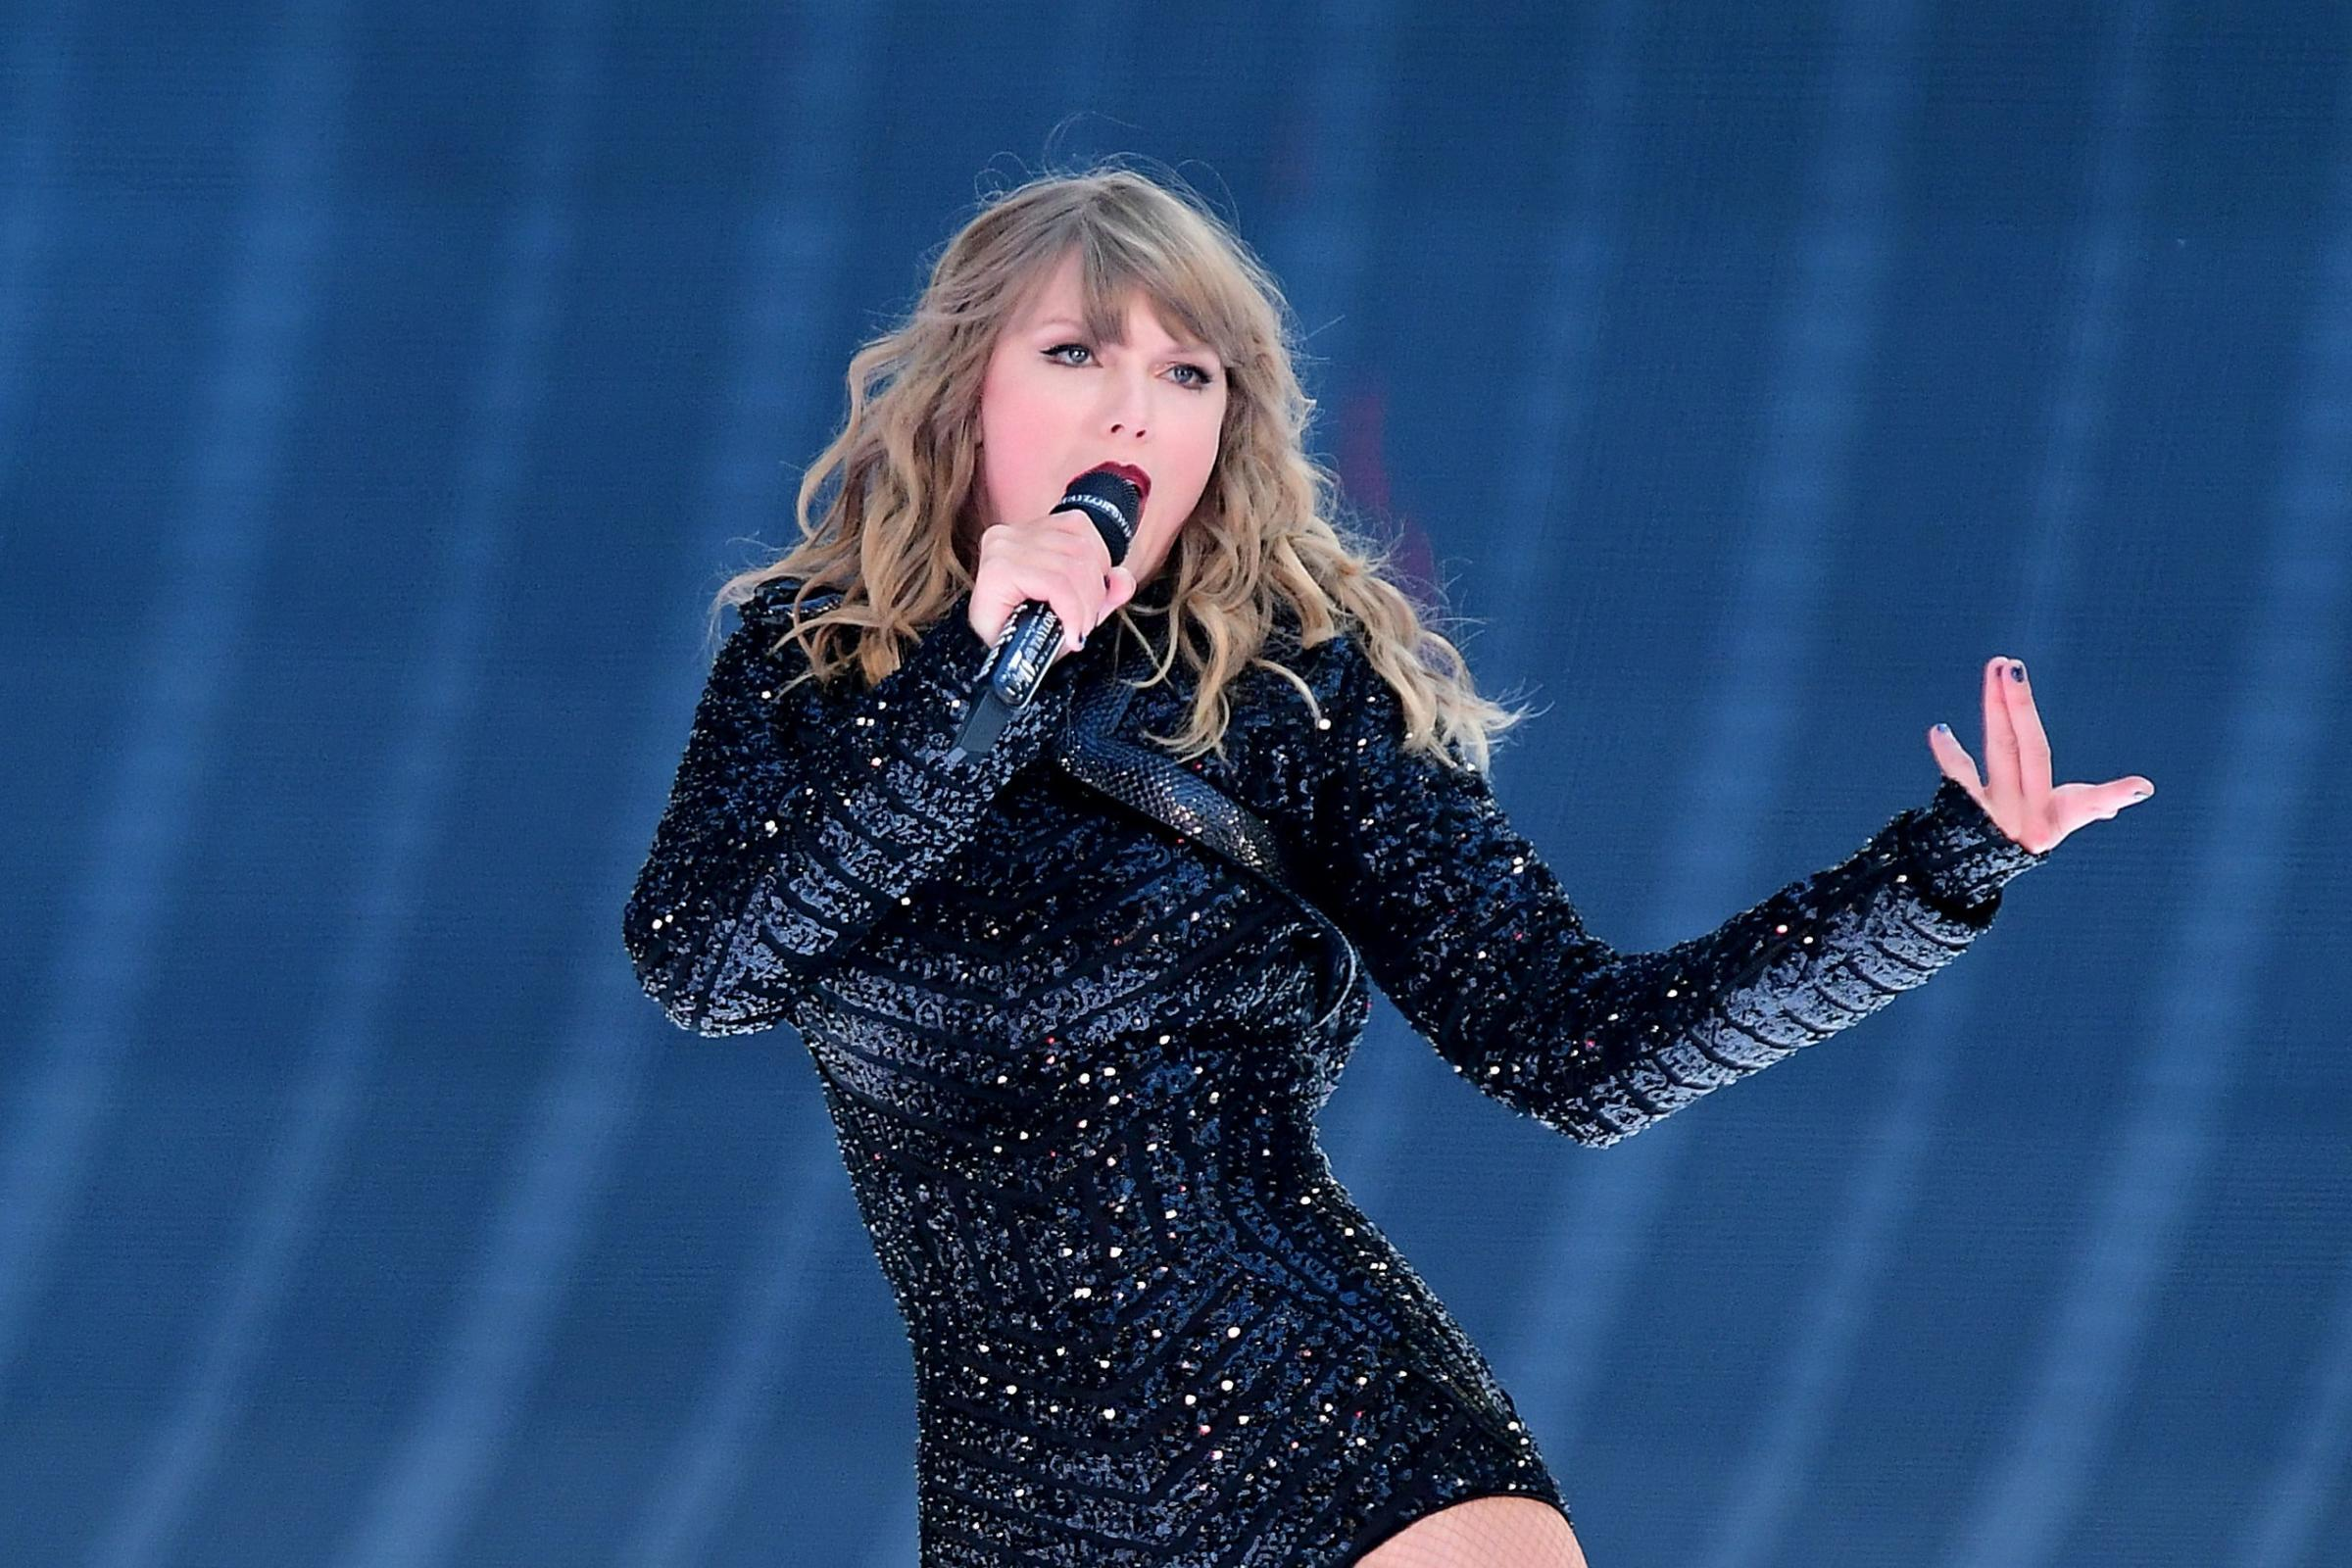 Marsha Blackburn shakes off Taylor Swift's intervention to win in Tennessee